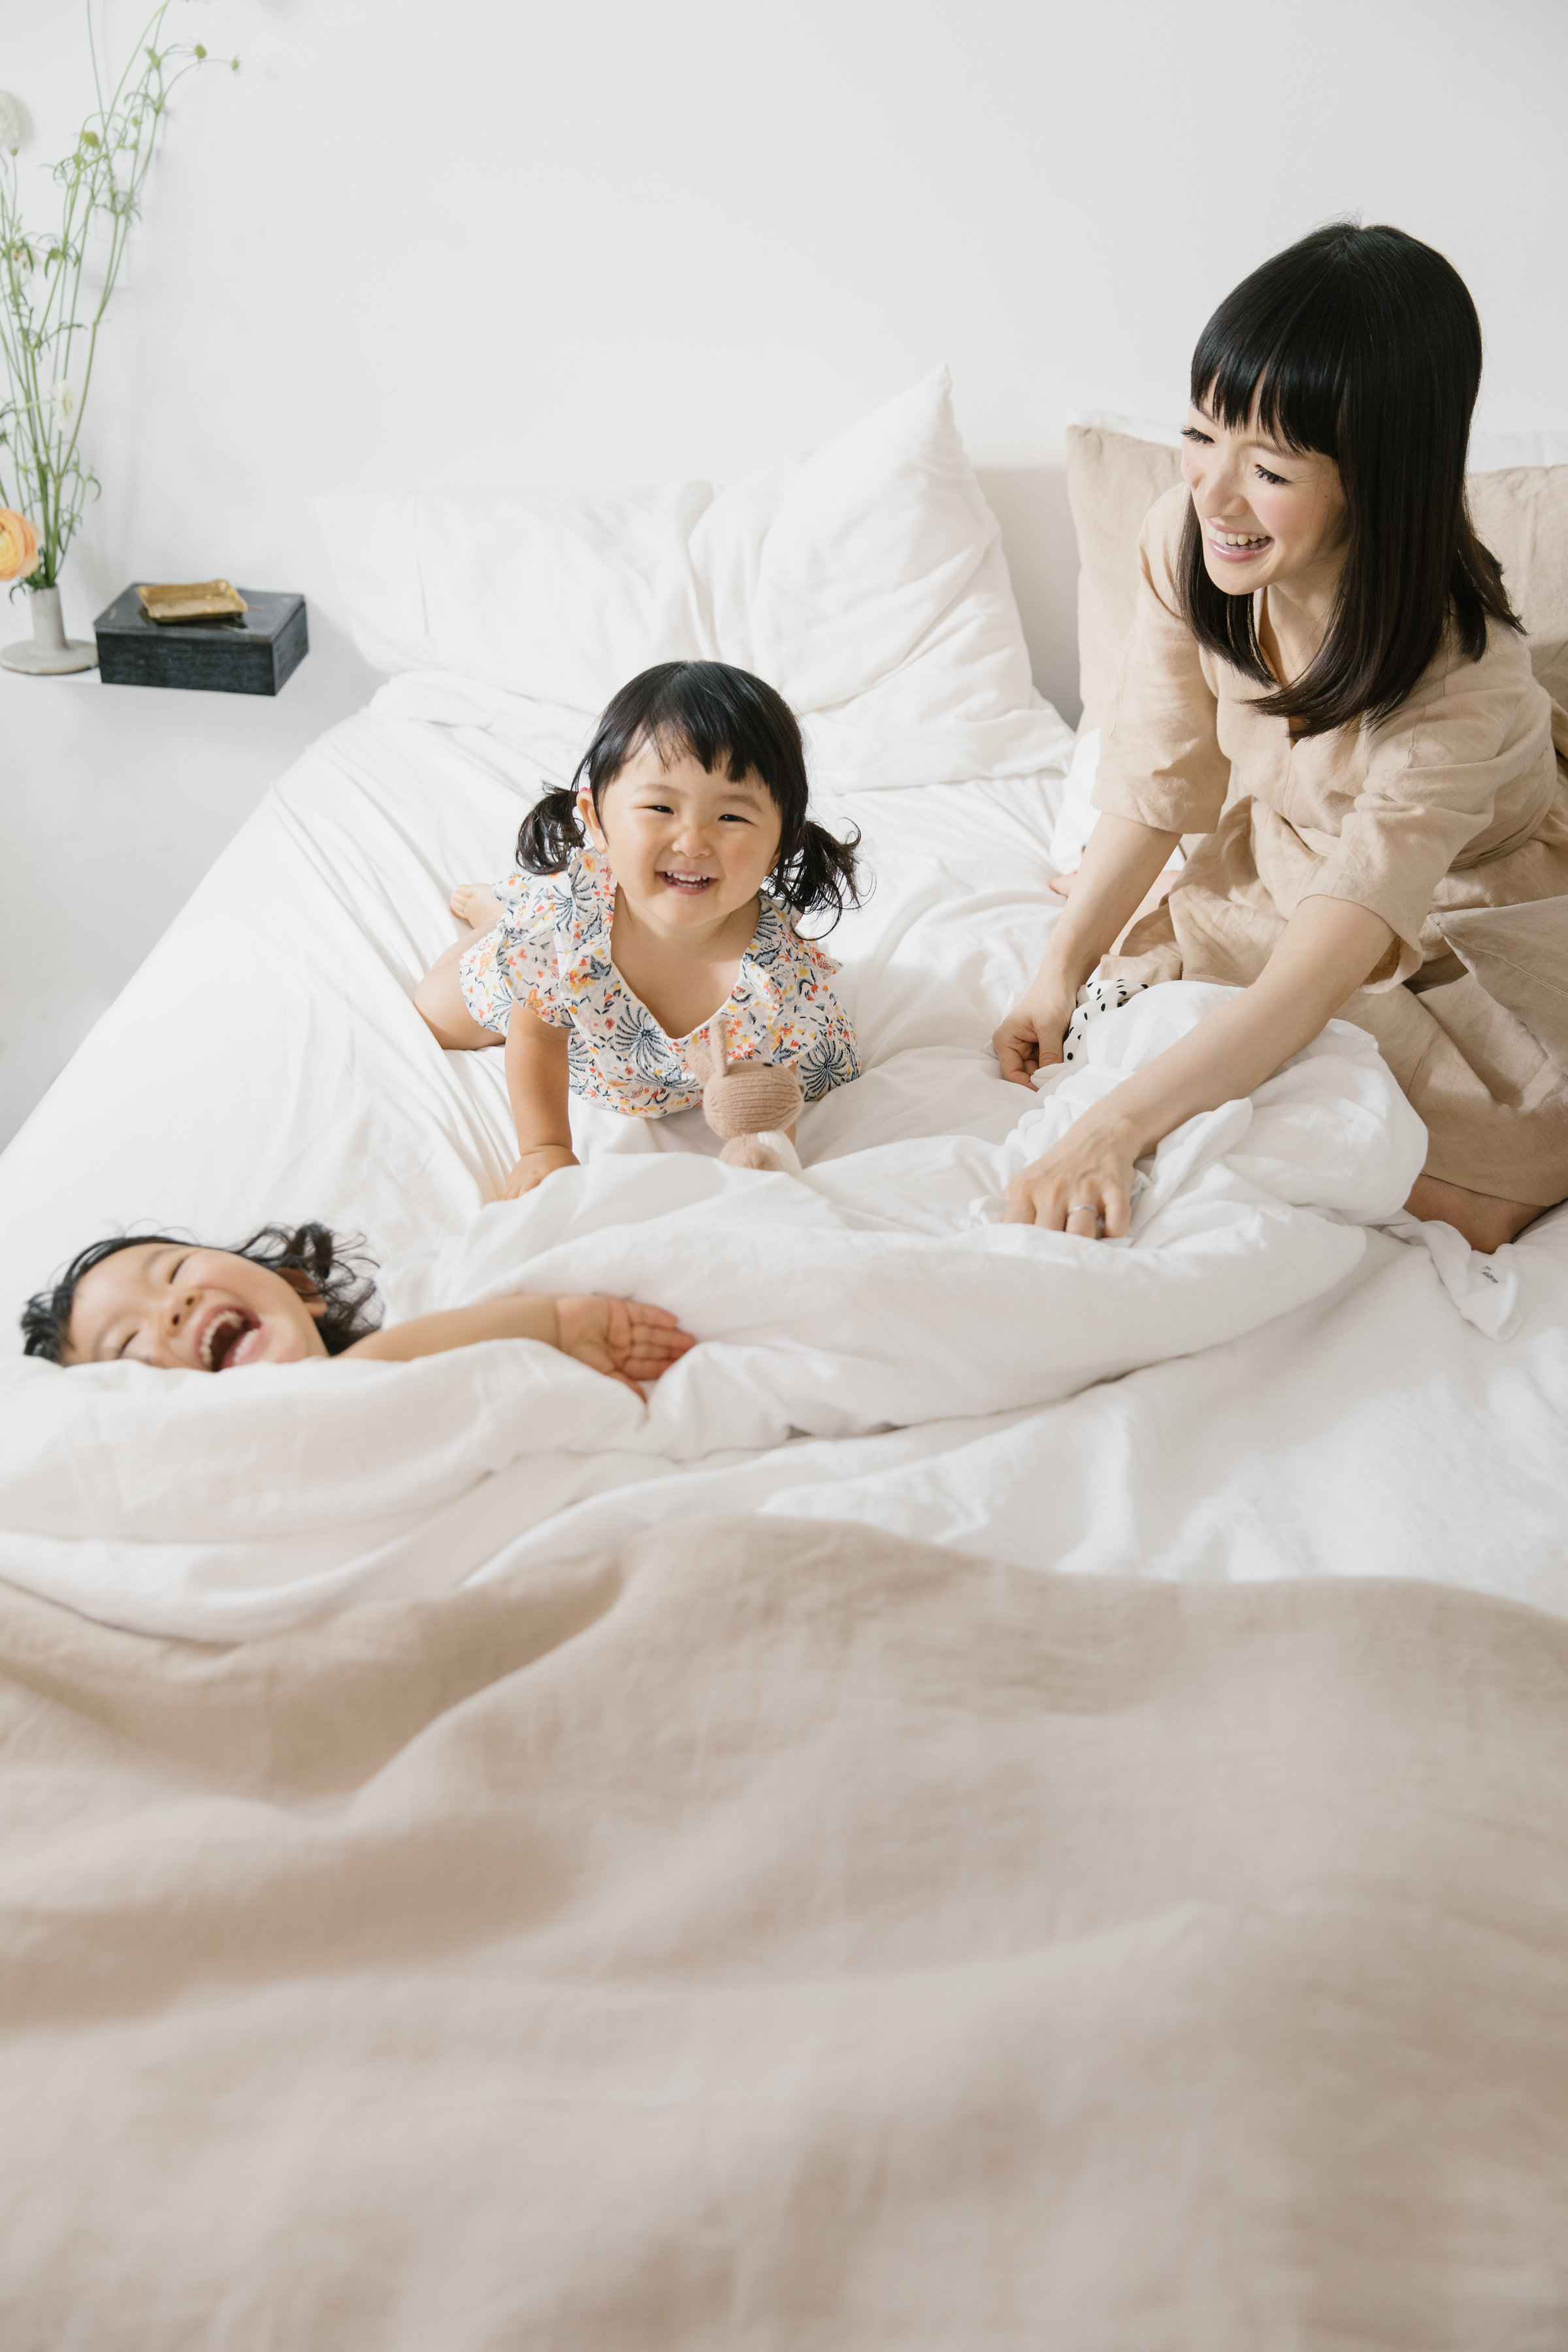 Marie Kondo on How to Get Kids Excited About Organization